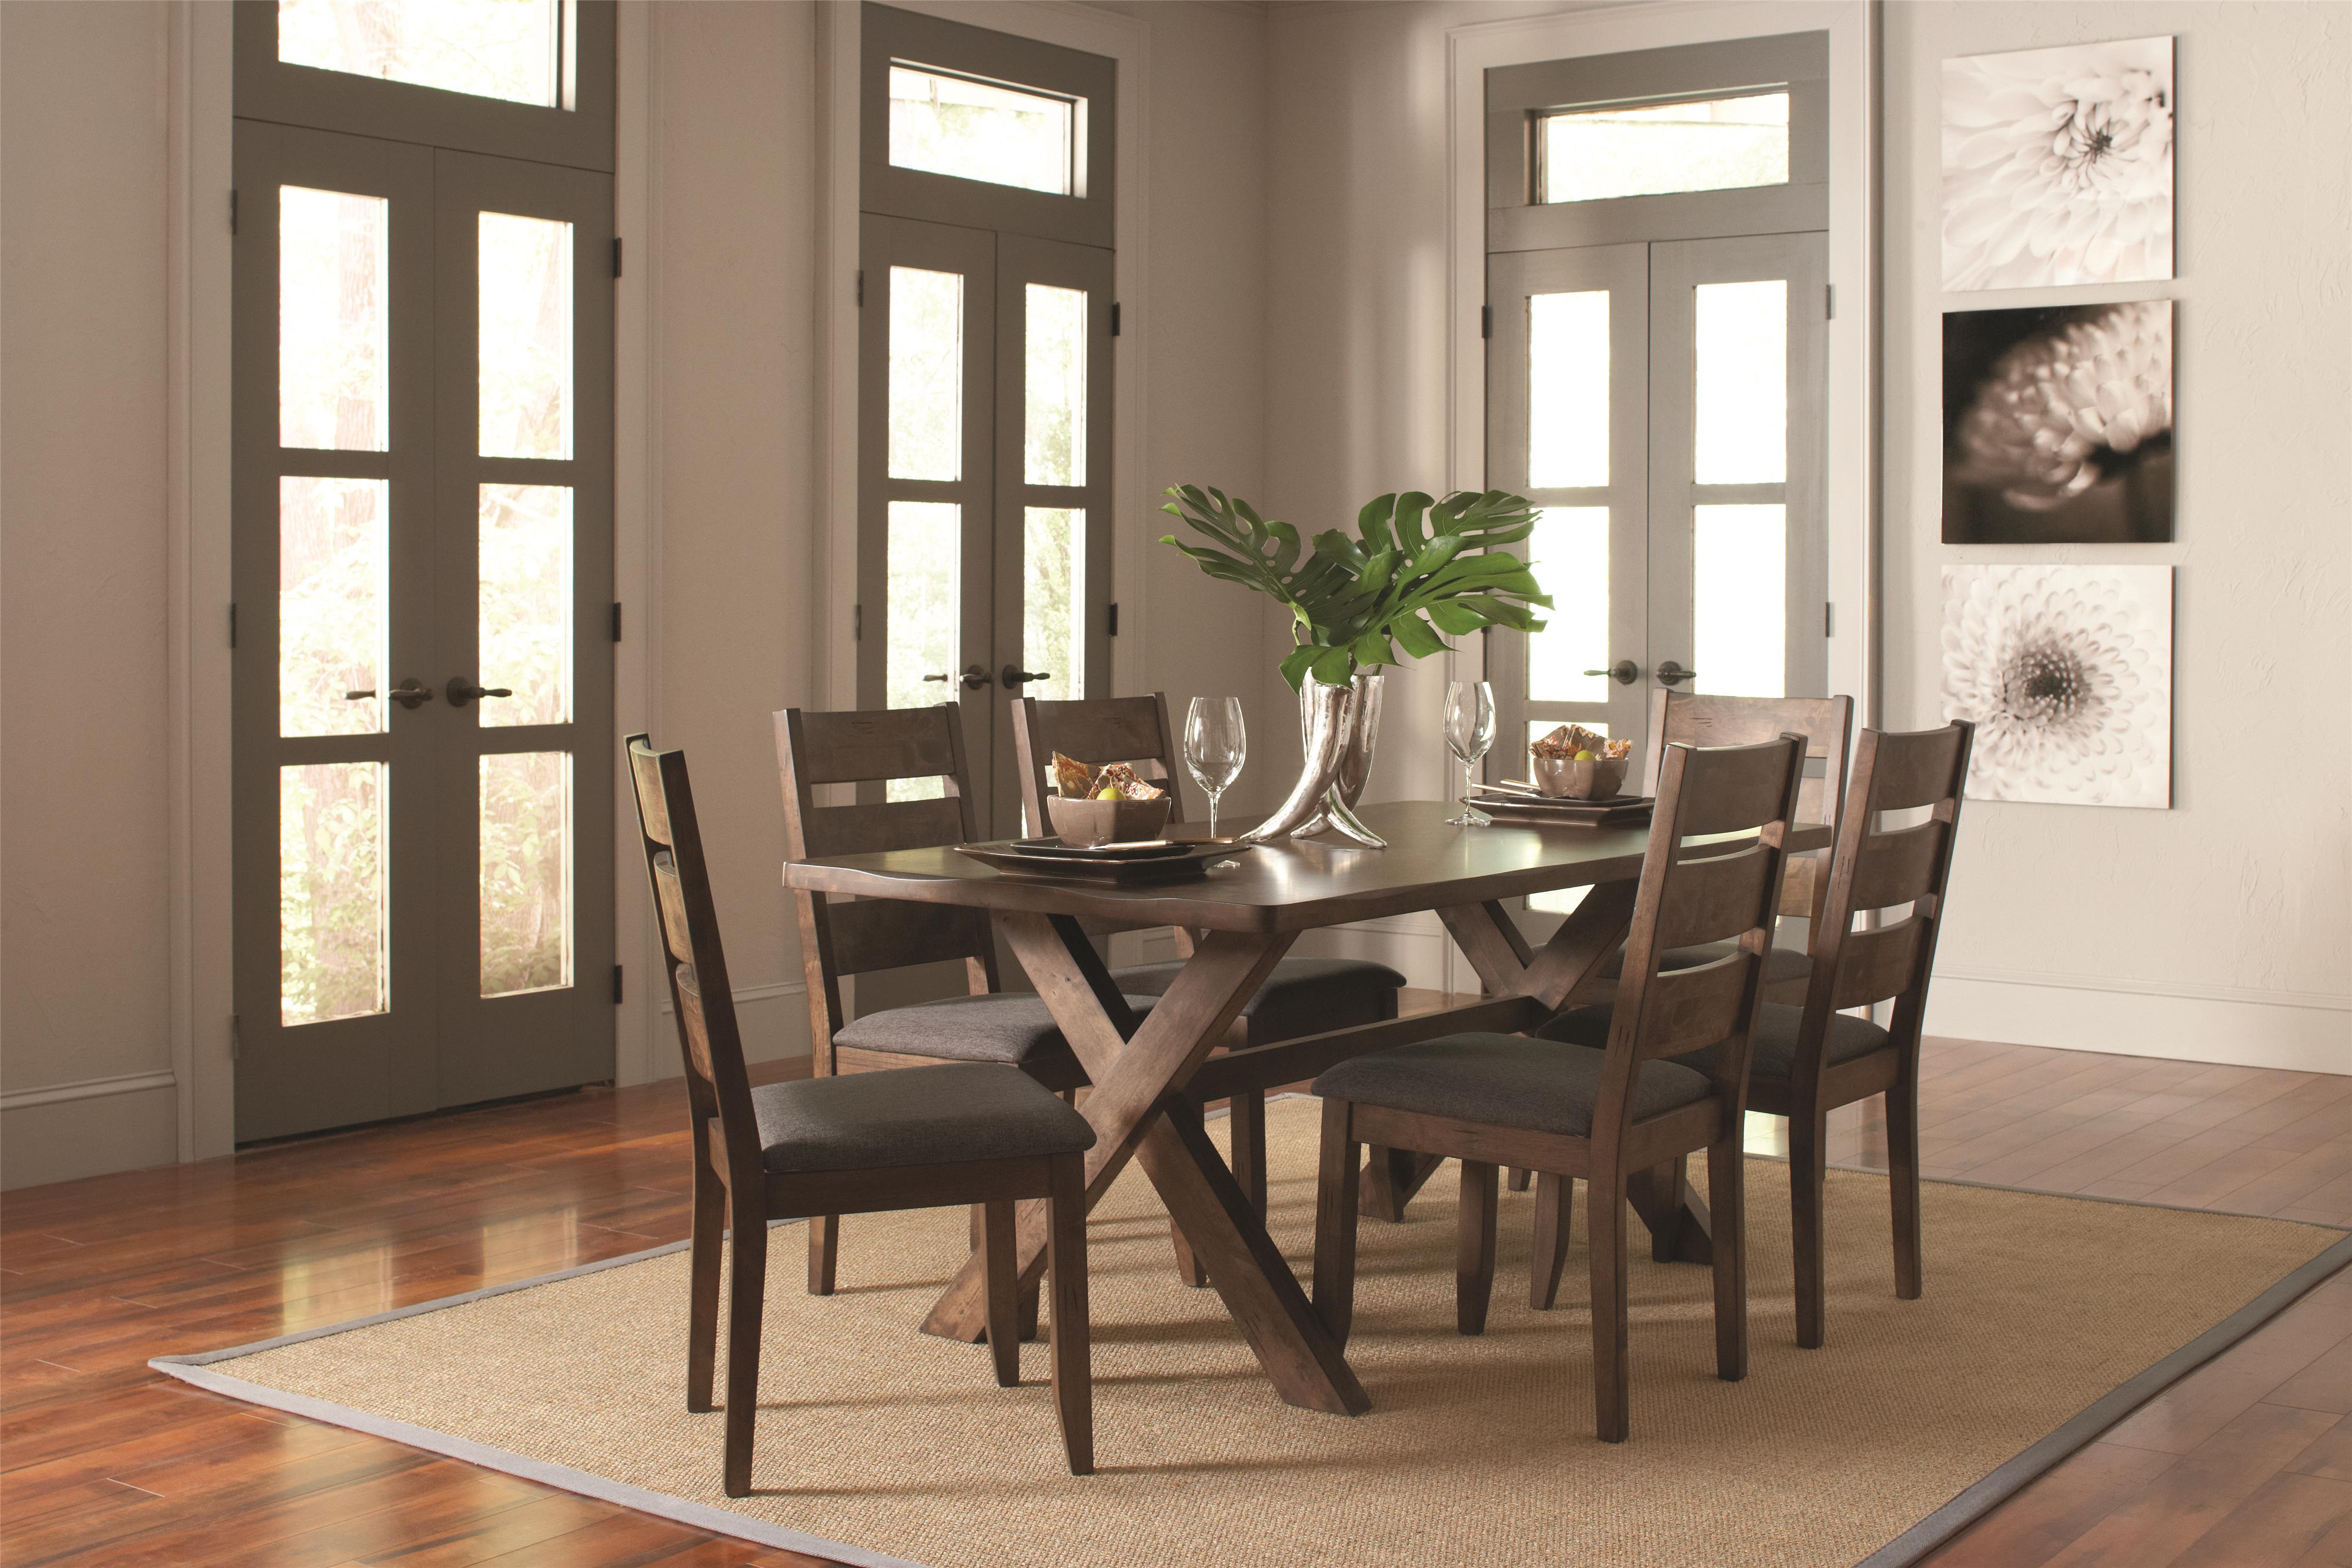 Dining Table Set & Alston Rustic Trestle Dining Table